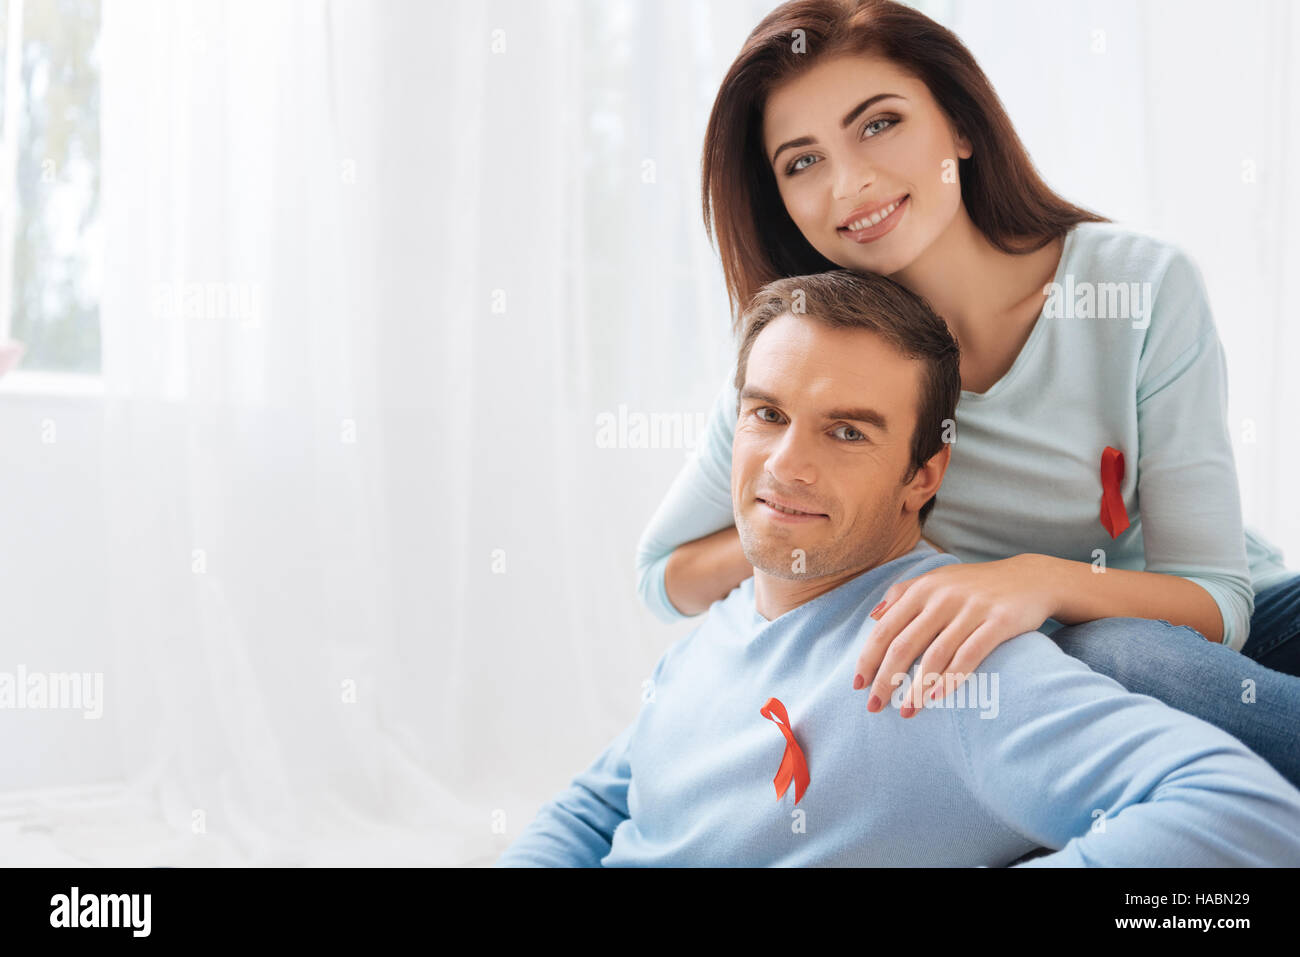 Pleasant optimistic couple showing their tolerance - Stock Image